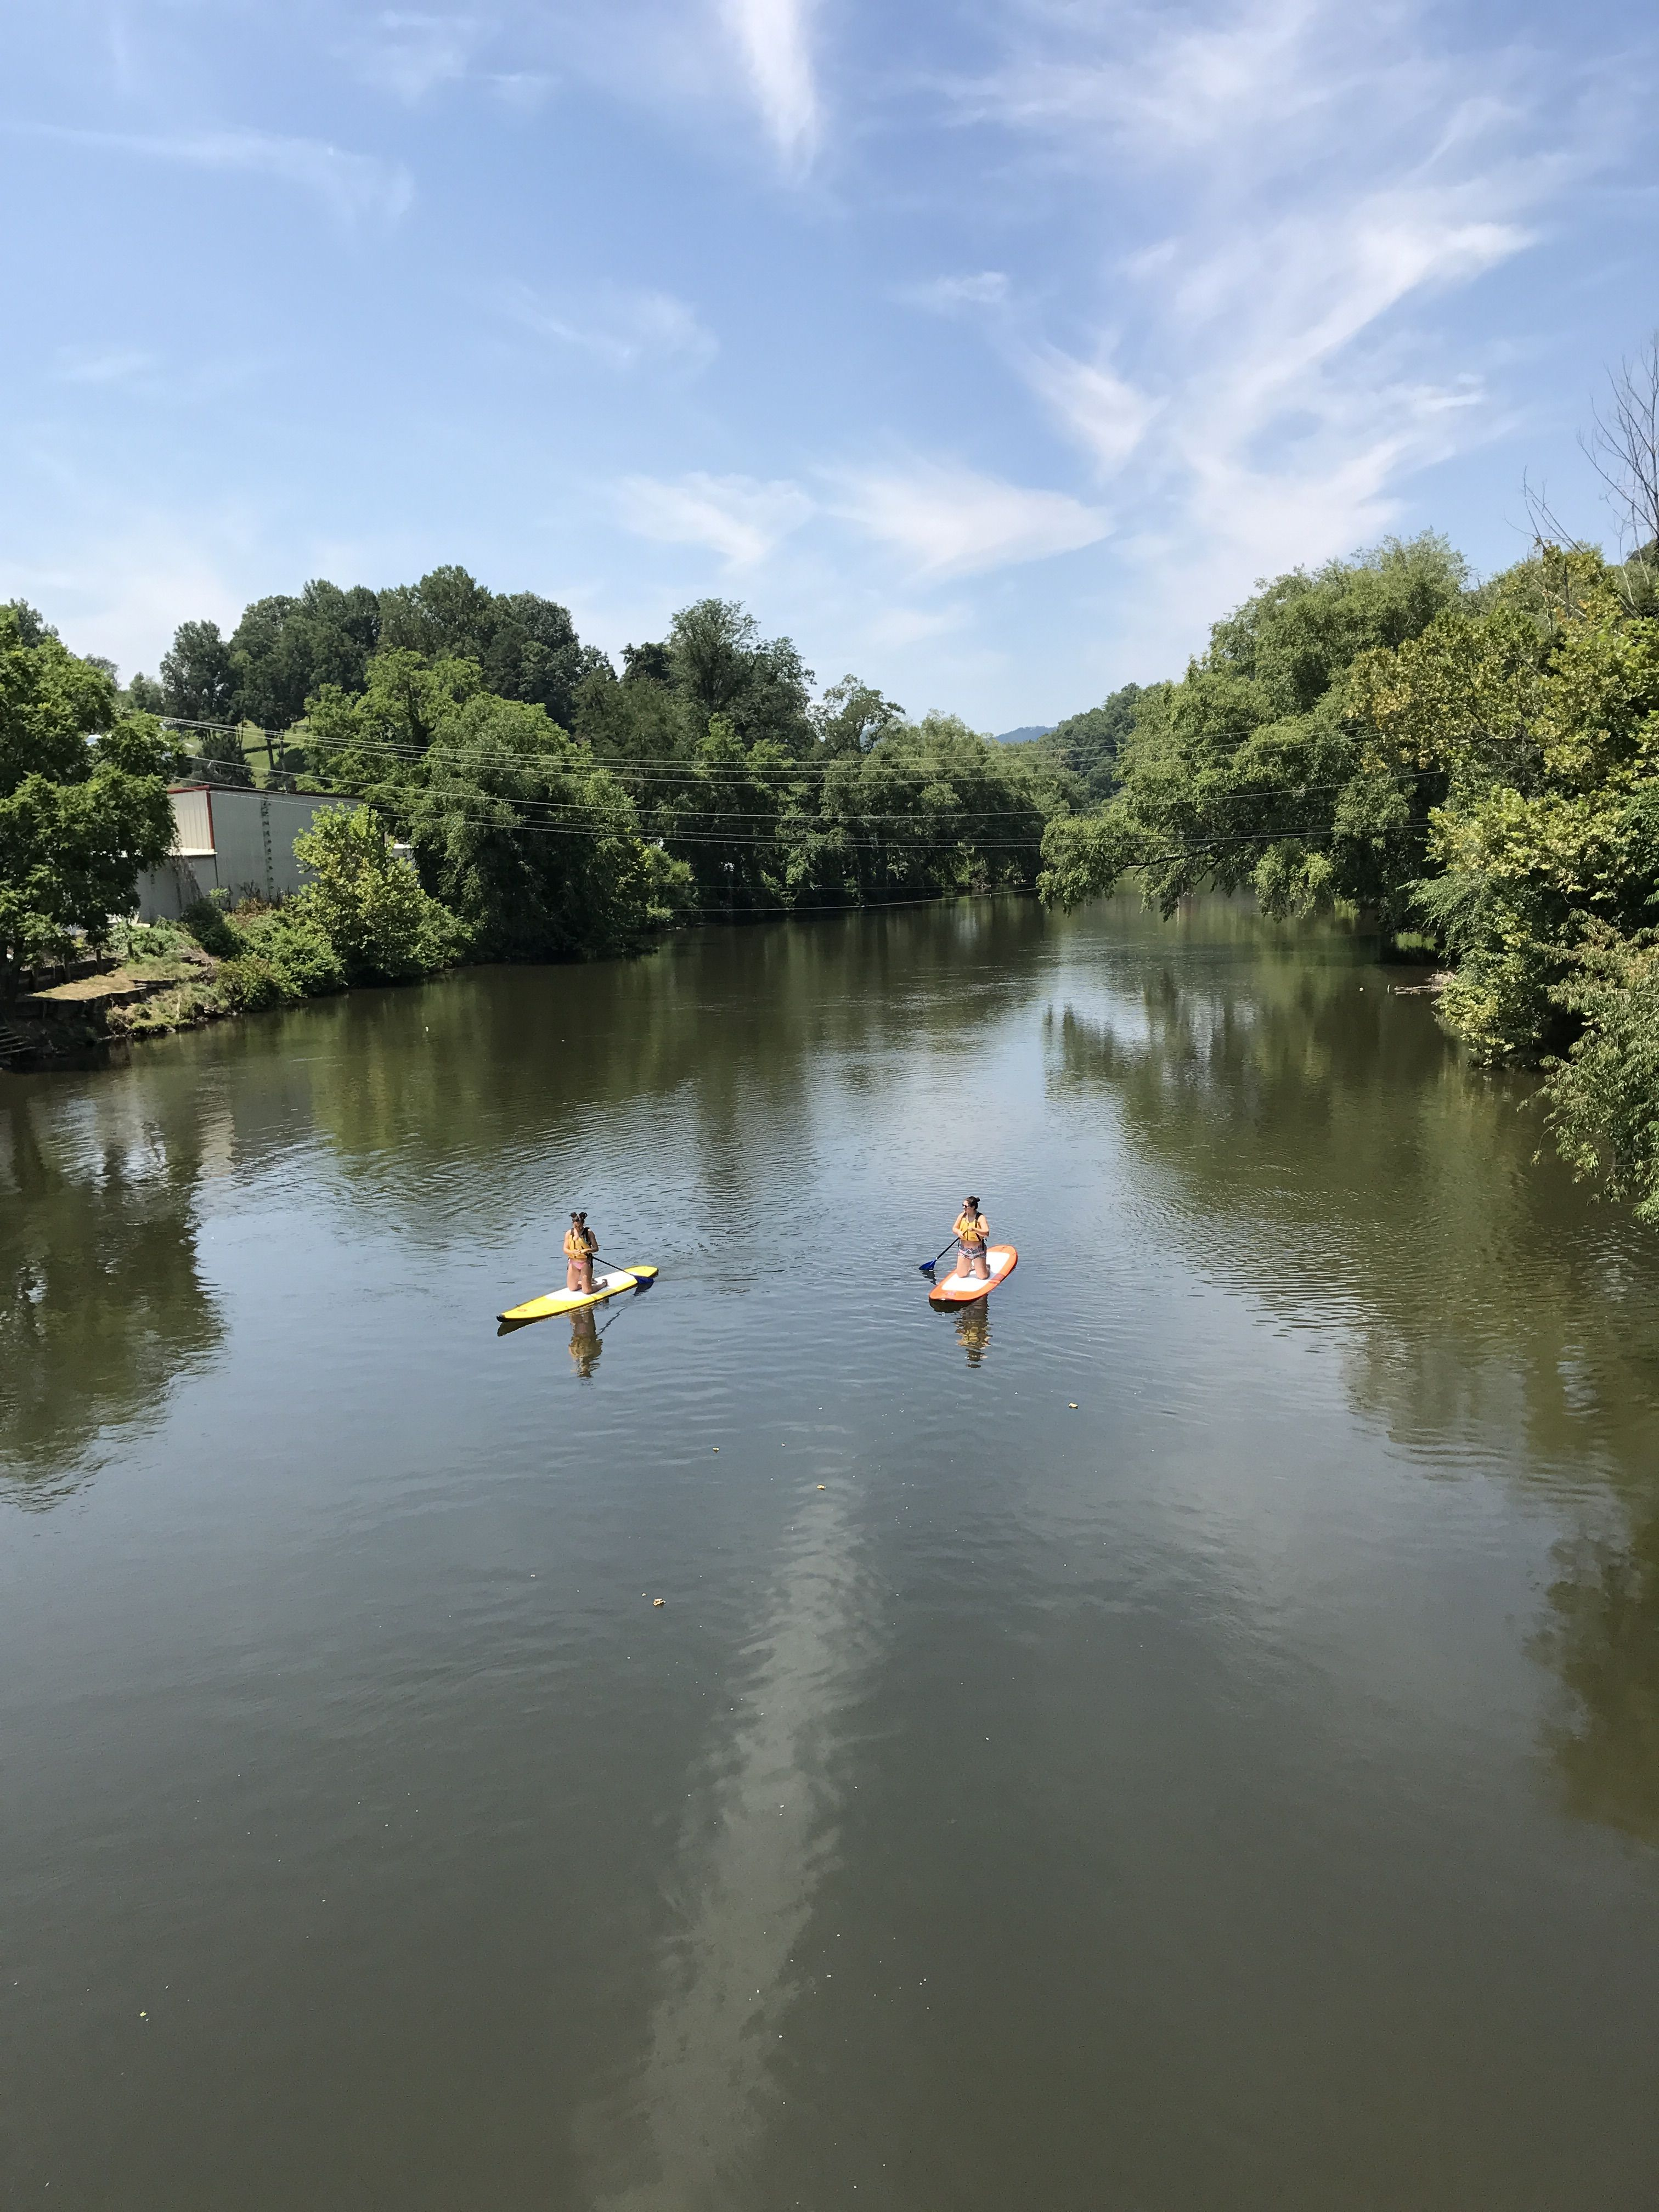 Paddle boarding on the Tuckaseegee River in Bryson City, NC